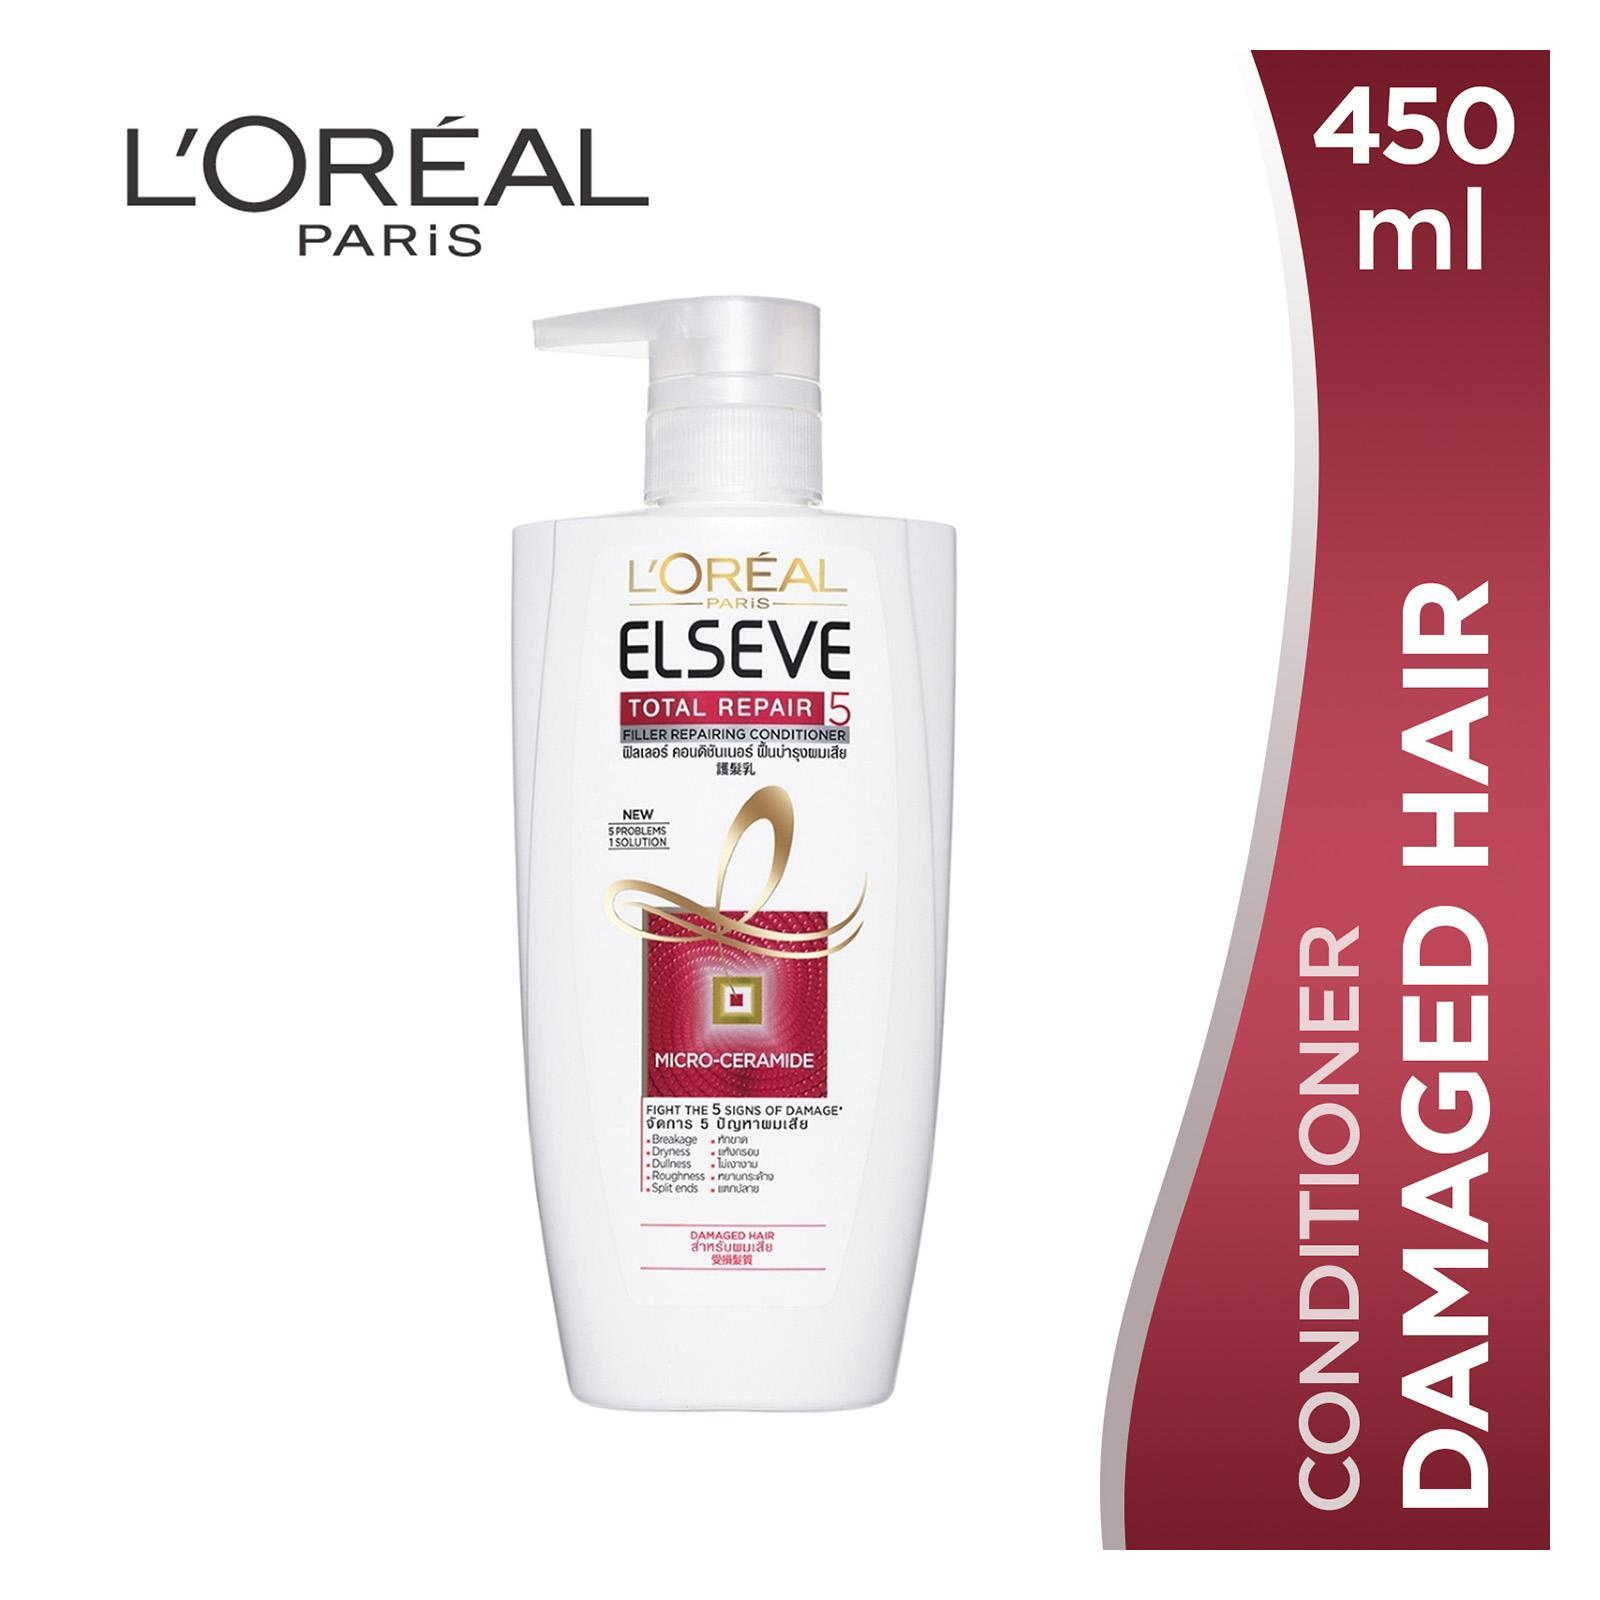 L'Oreal Paris Elseve Total Repair 5 Repairing Conditioner